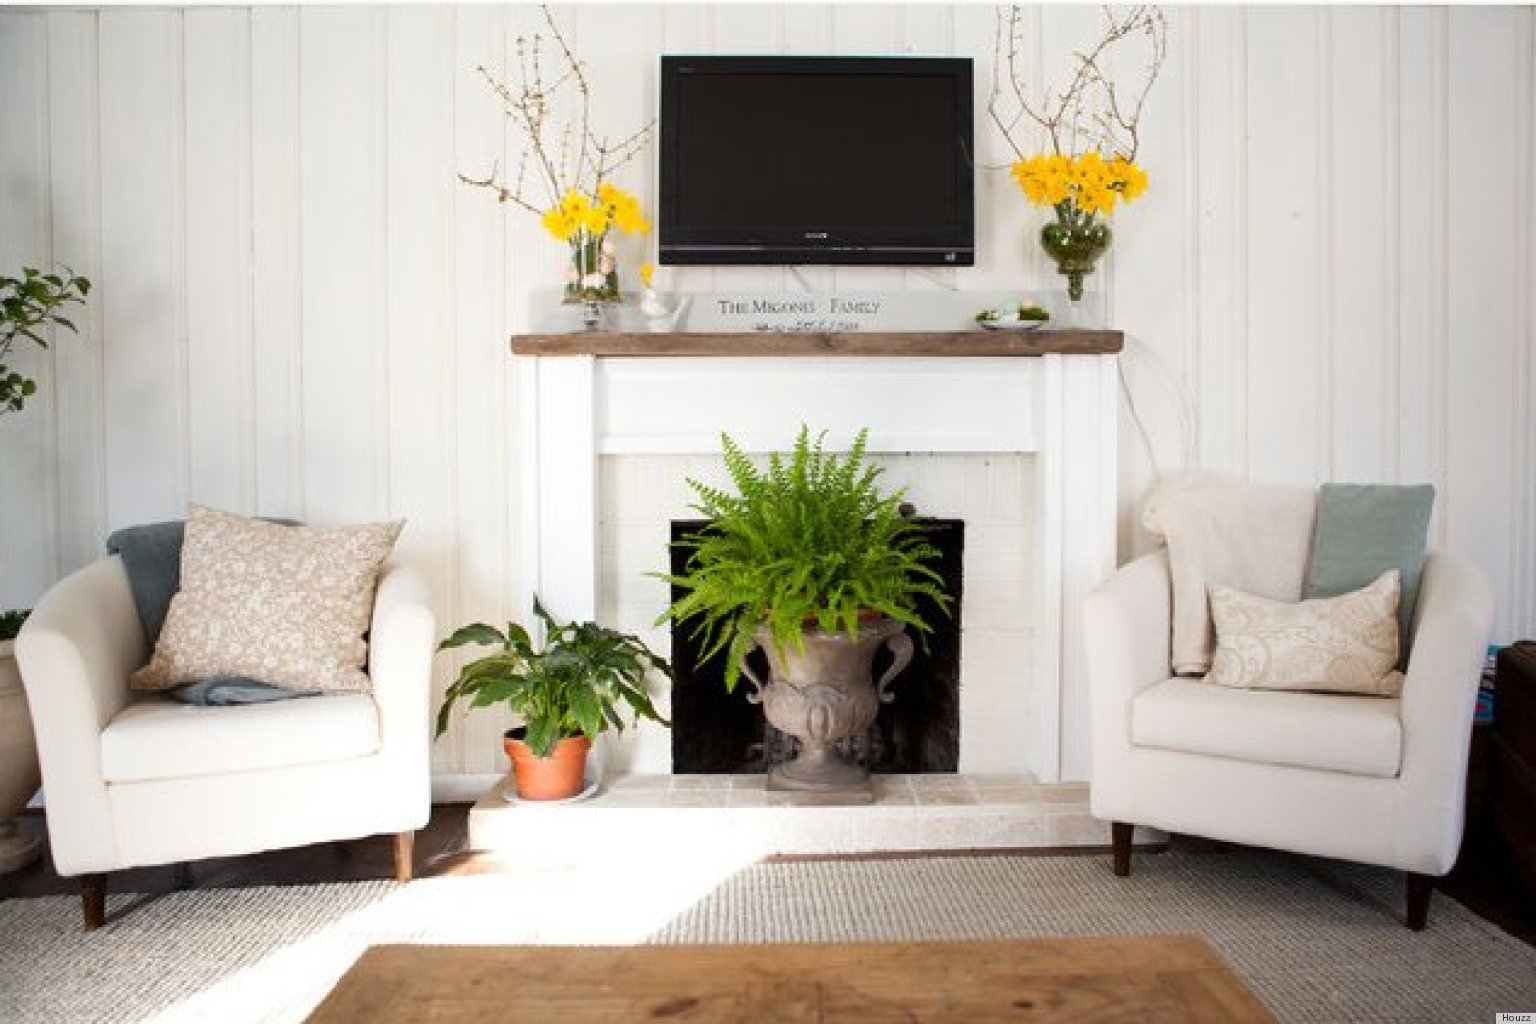 10 Ways To Decorate Your Fireplace In The Summer, Since. Room Building Software. Large Room Dividers. Family Room Curtains. Living Room Accent Chair. Rooms For Rent Wilmington Nc. Wall Units For Living Room. Photo Wall Decor. Decorative Planters